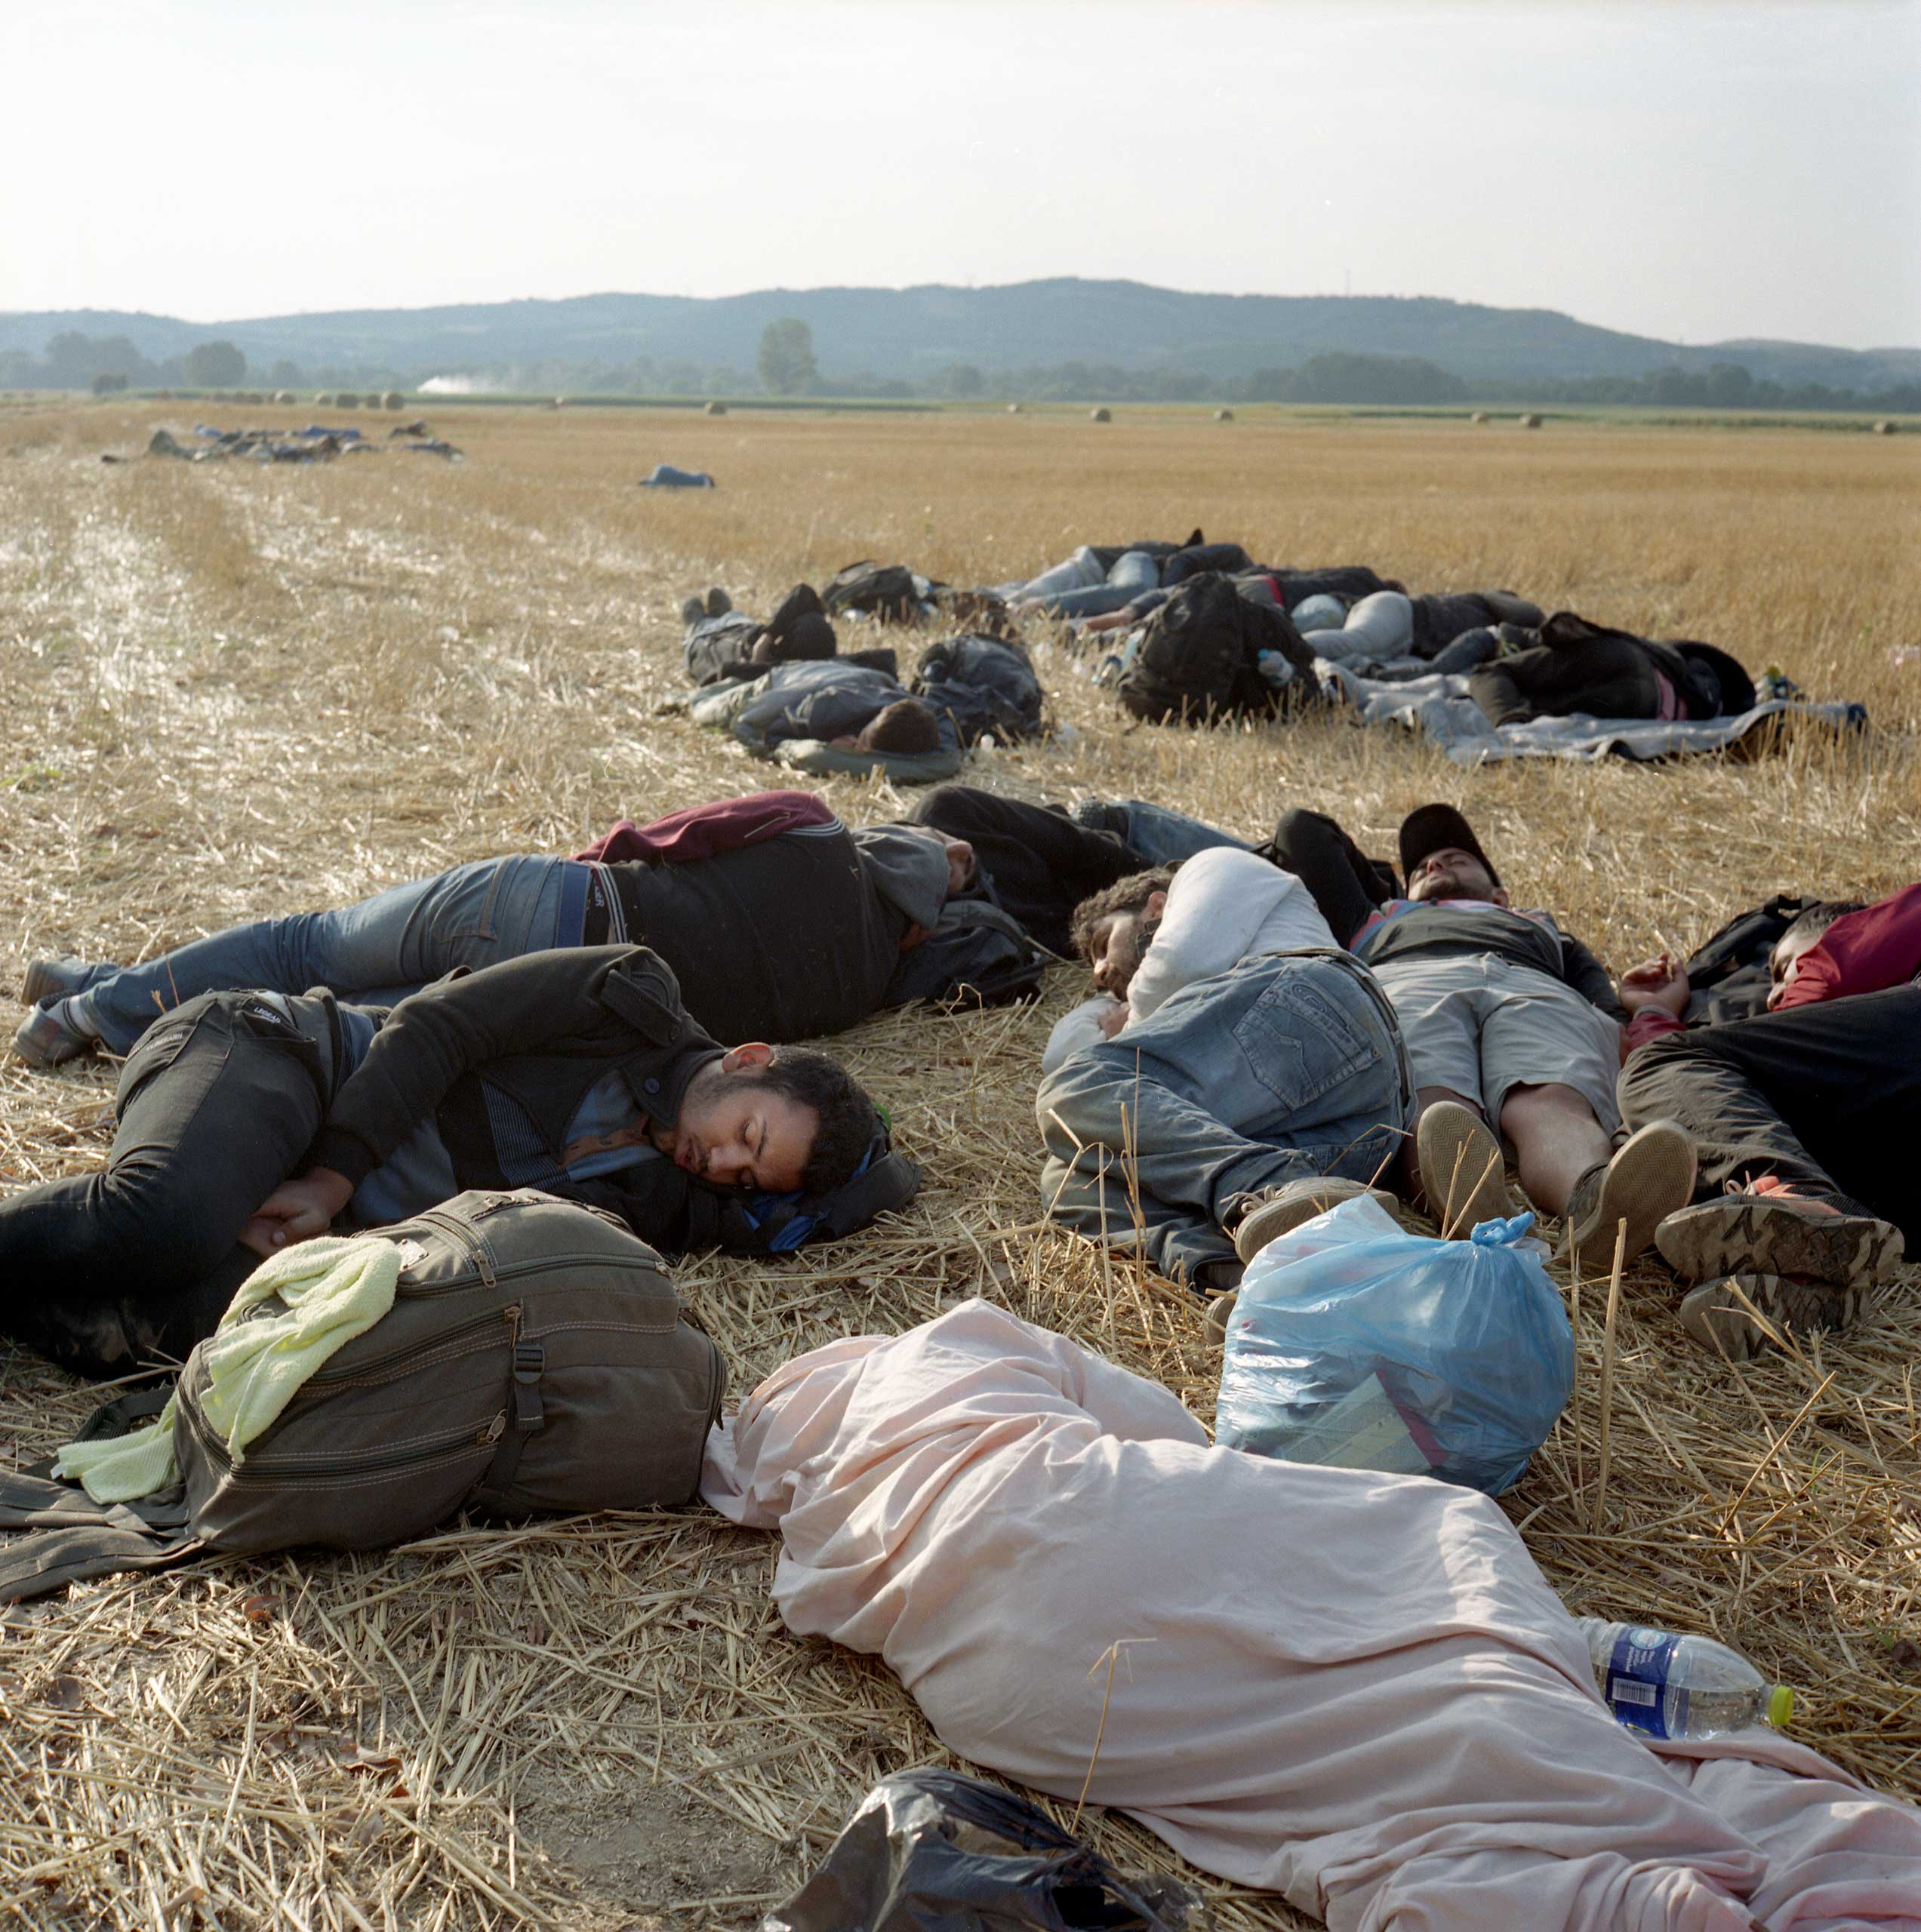 Refugees from Syria sleeping in the fields of Idomeni, a small town by the Greek-Macedonian border. Greece, June 2015.